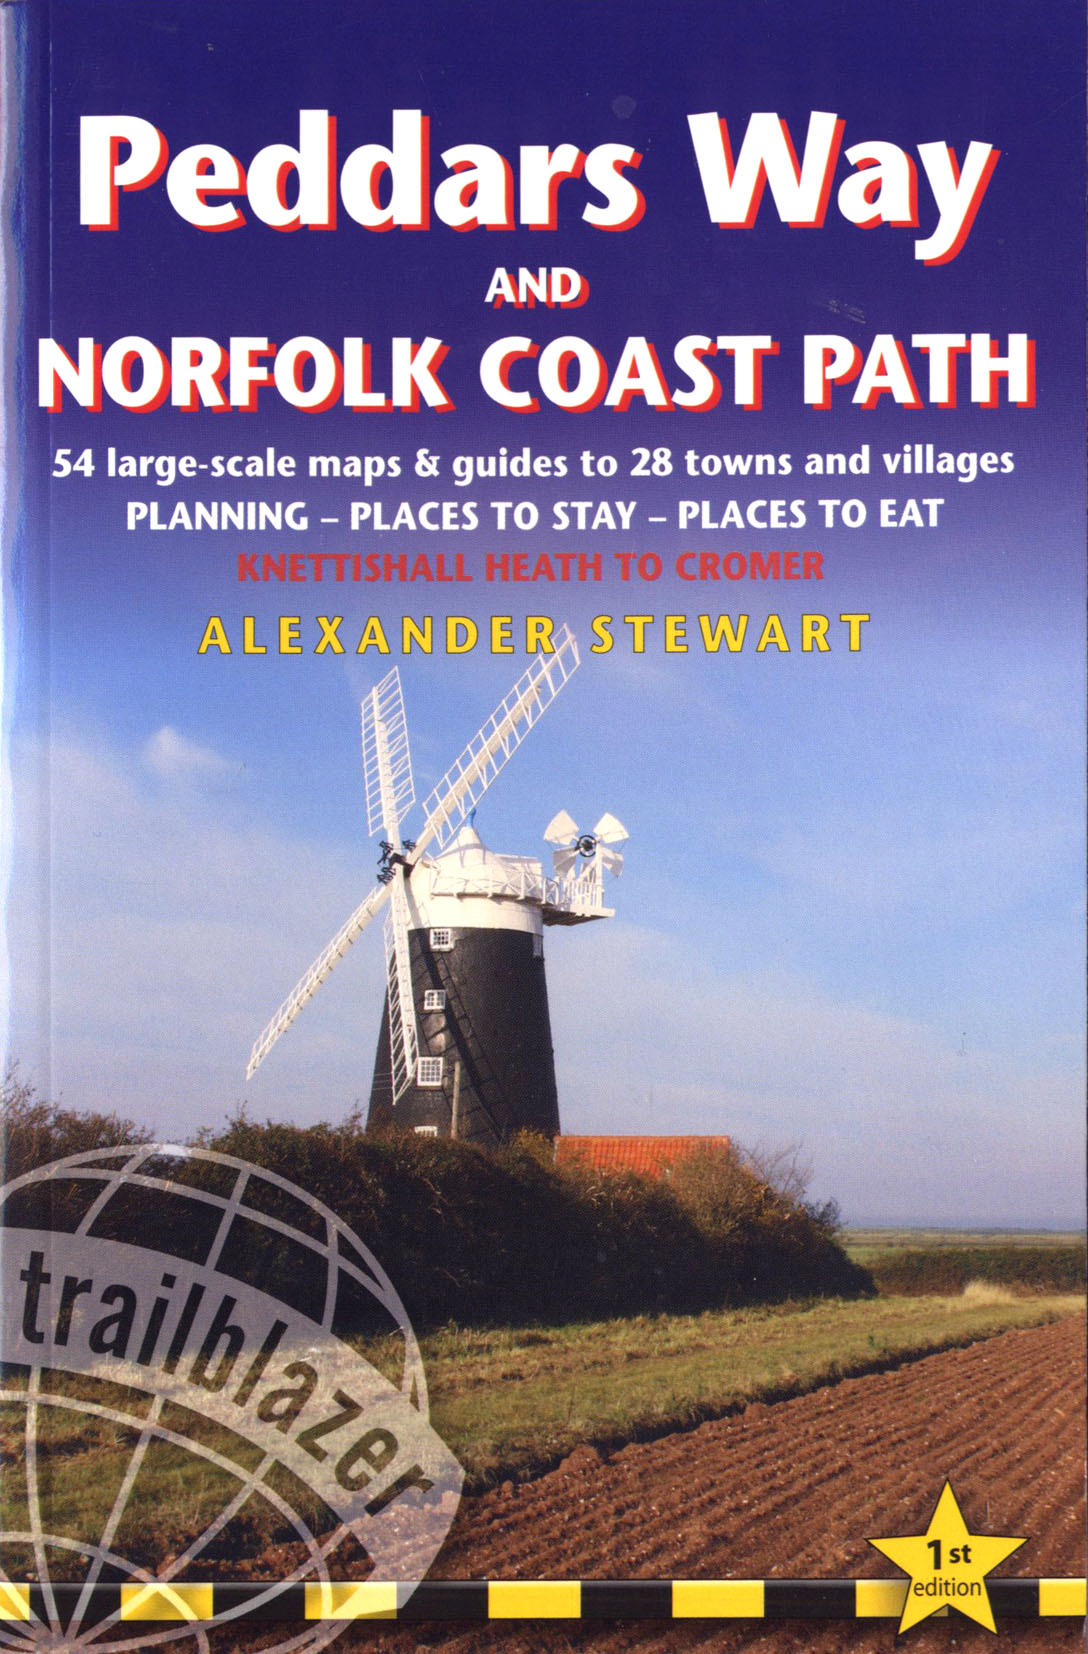 PEDDAR'S WAY AND NORFOLK COAST PATH